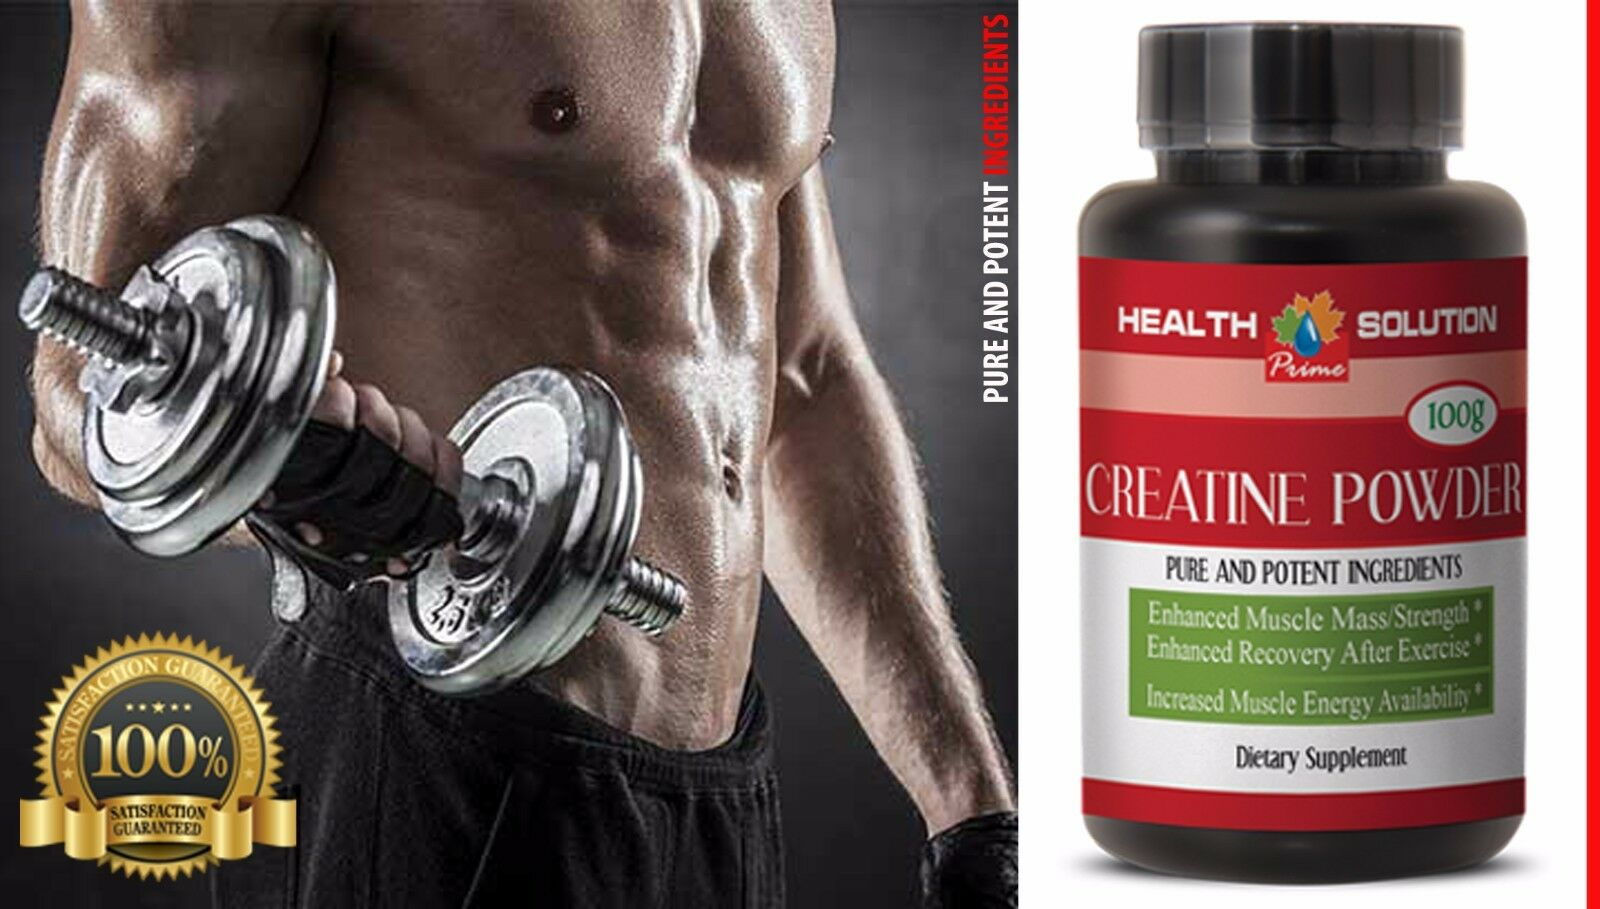 Nutritional Support - CREATINE POWDER -  supplements for ath